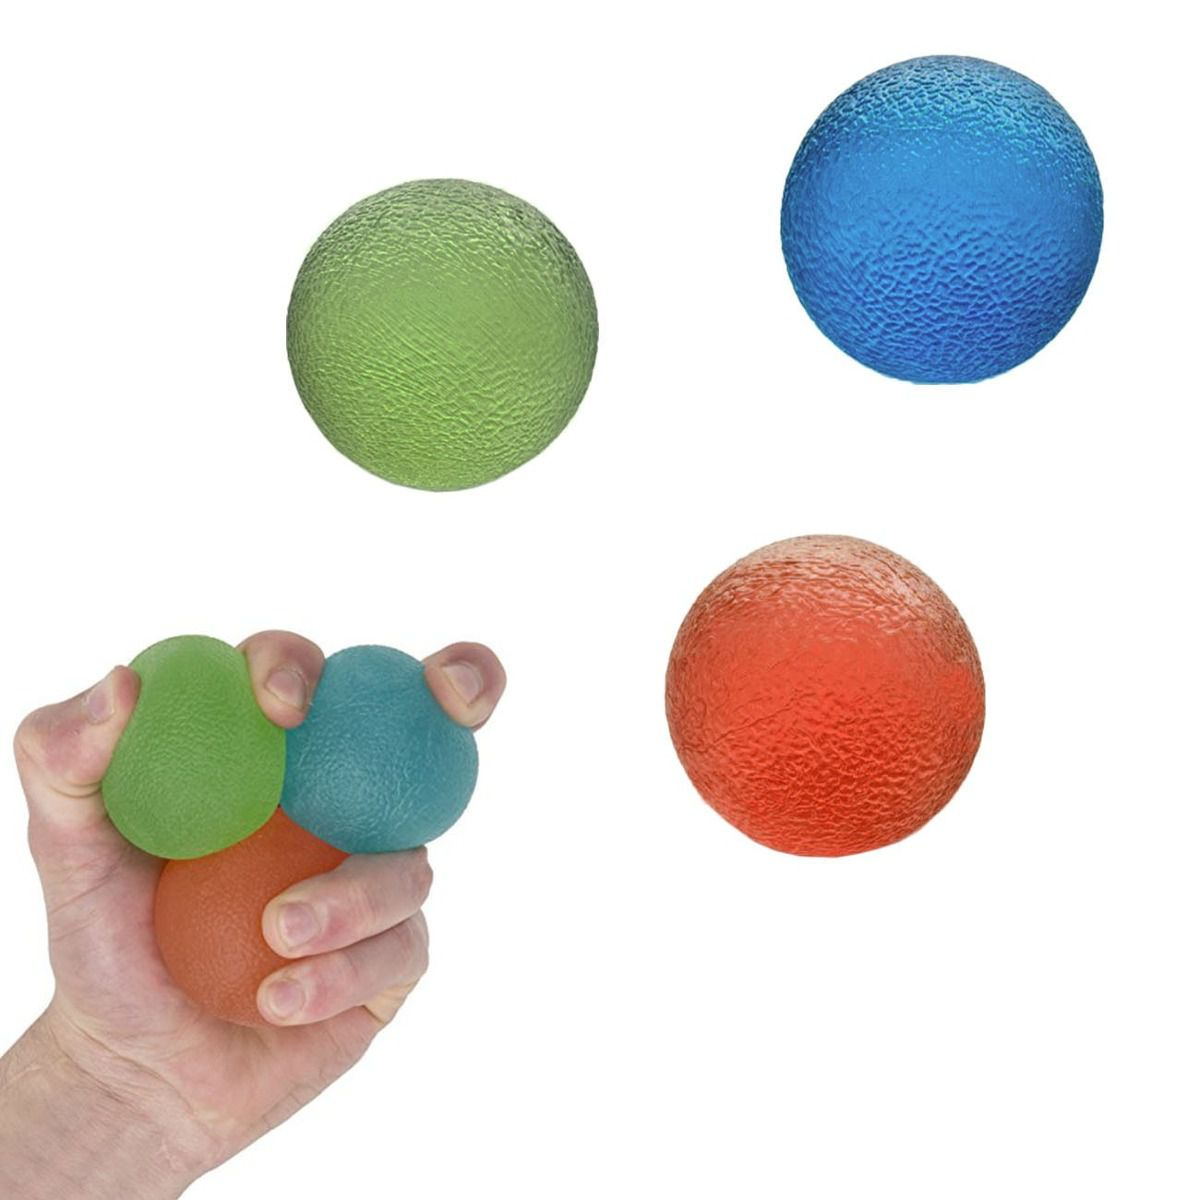 Kit 3 Bolas De Aperto Grip Ball Tensão Leve, Media E Forte - Liveup